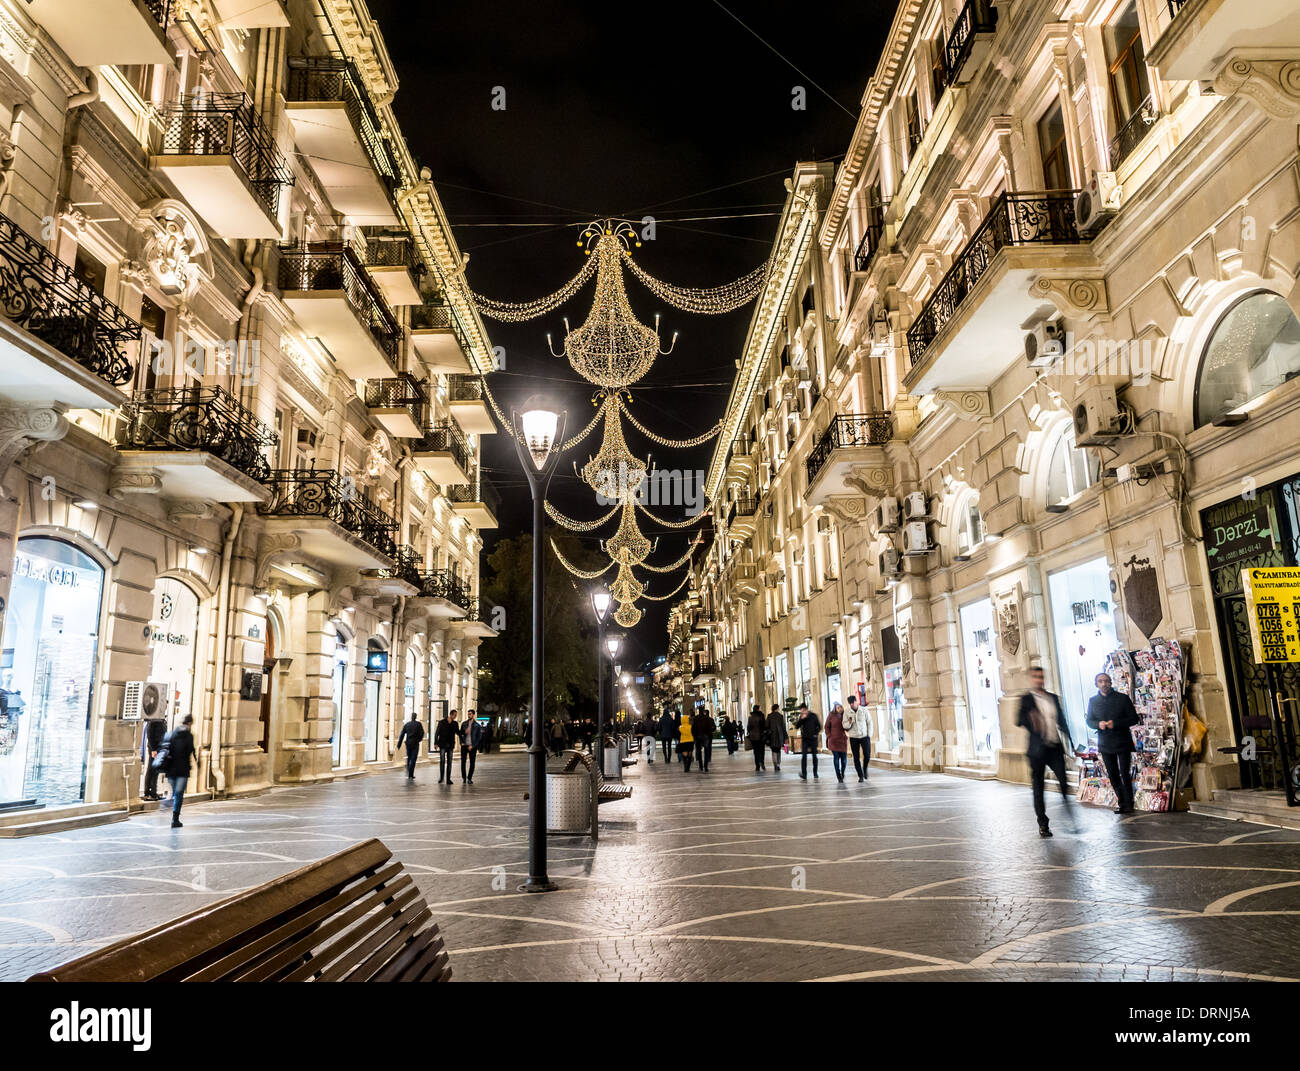 Nizami street in the center of Baku, Azarbaijan, illuminated by night. - Stock Image